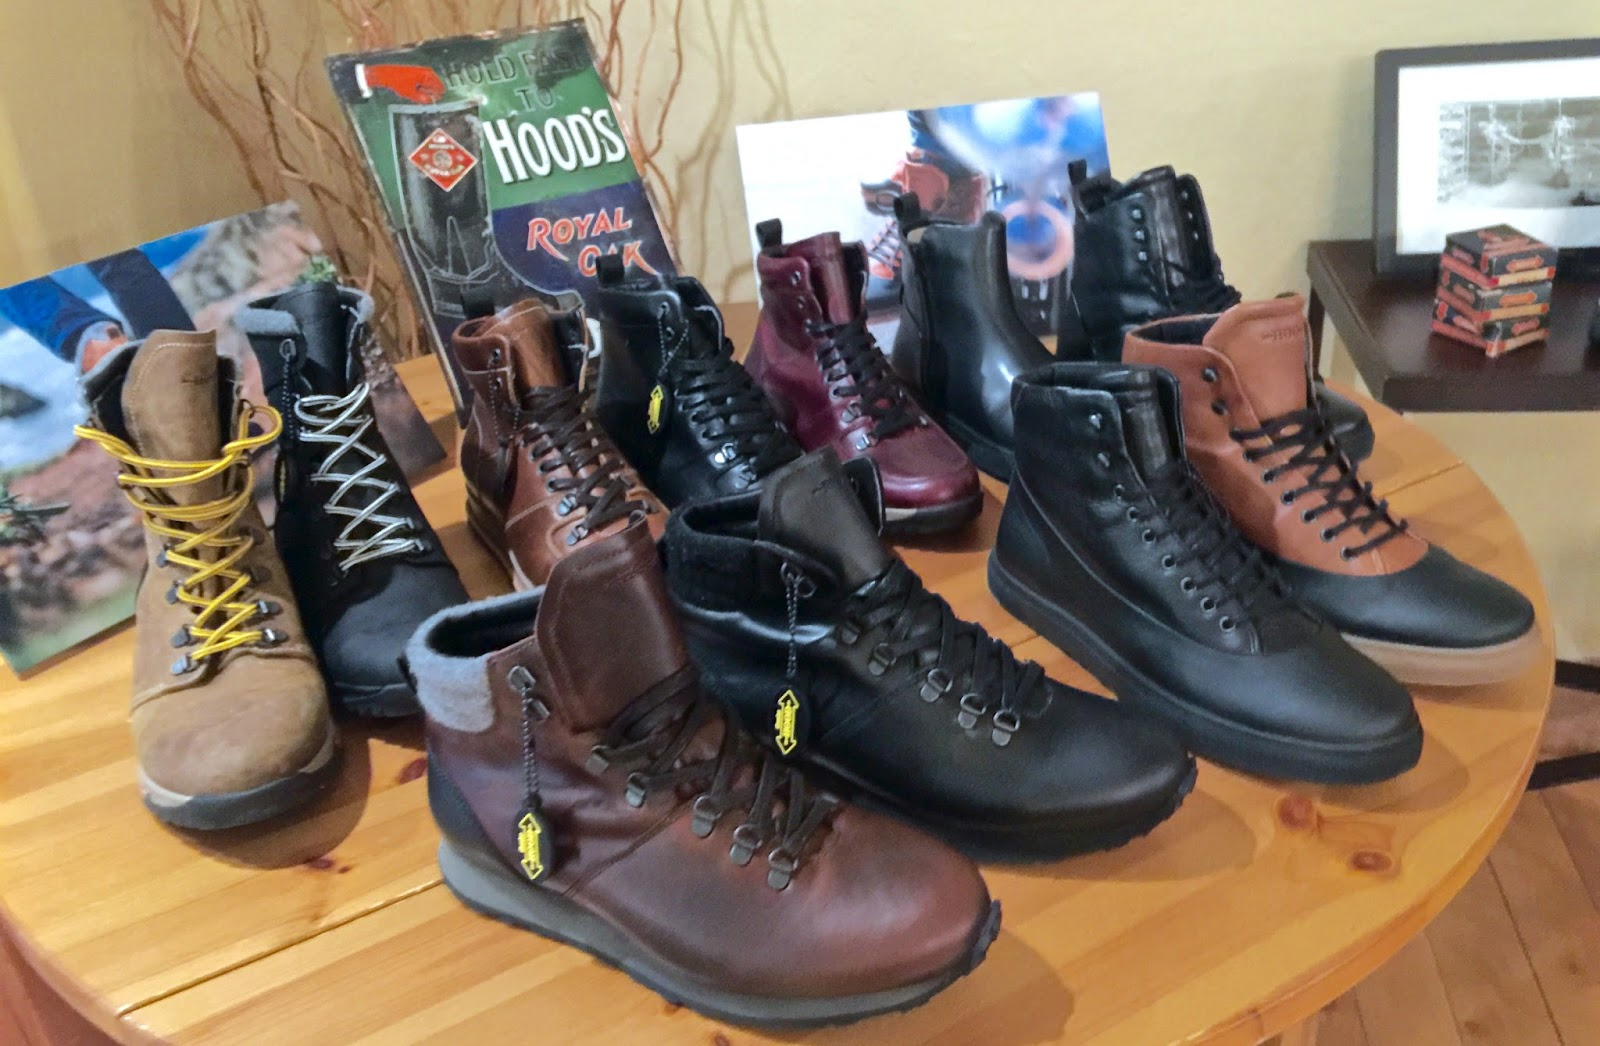 Hood Rubber Company - Men's Shoes With Trail to Urban Style